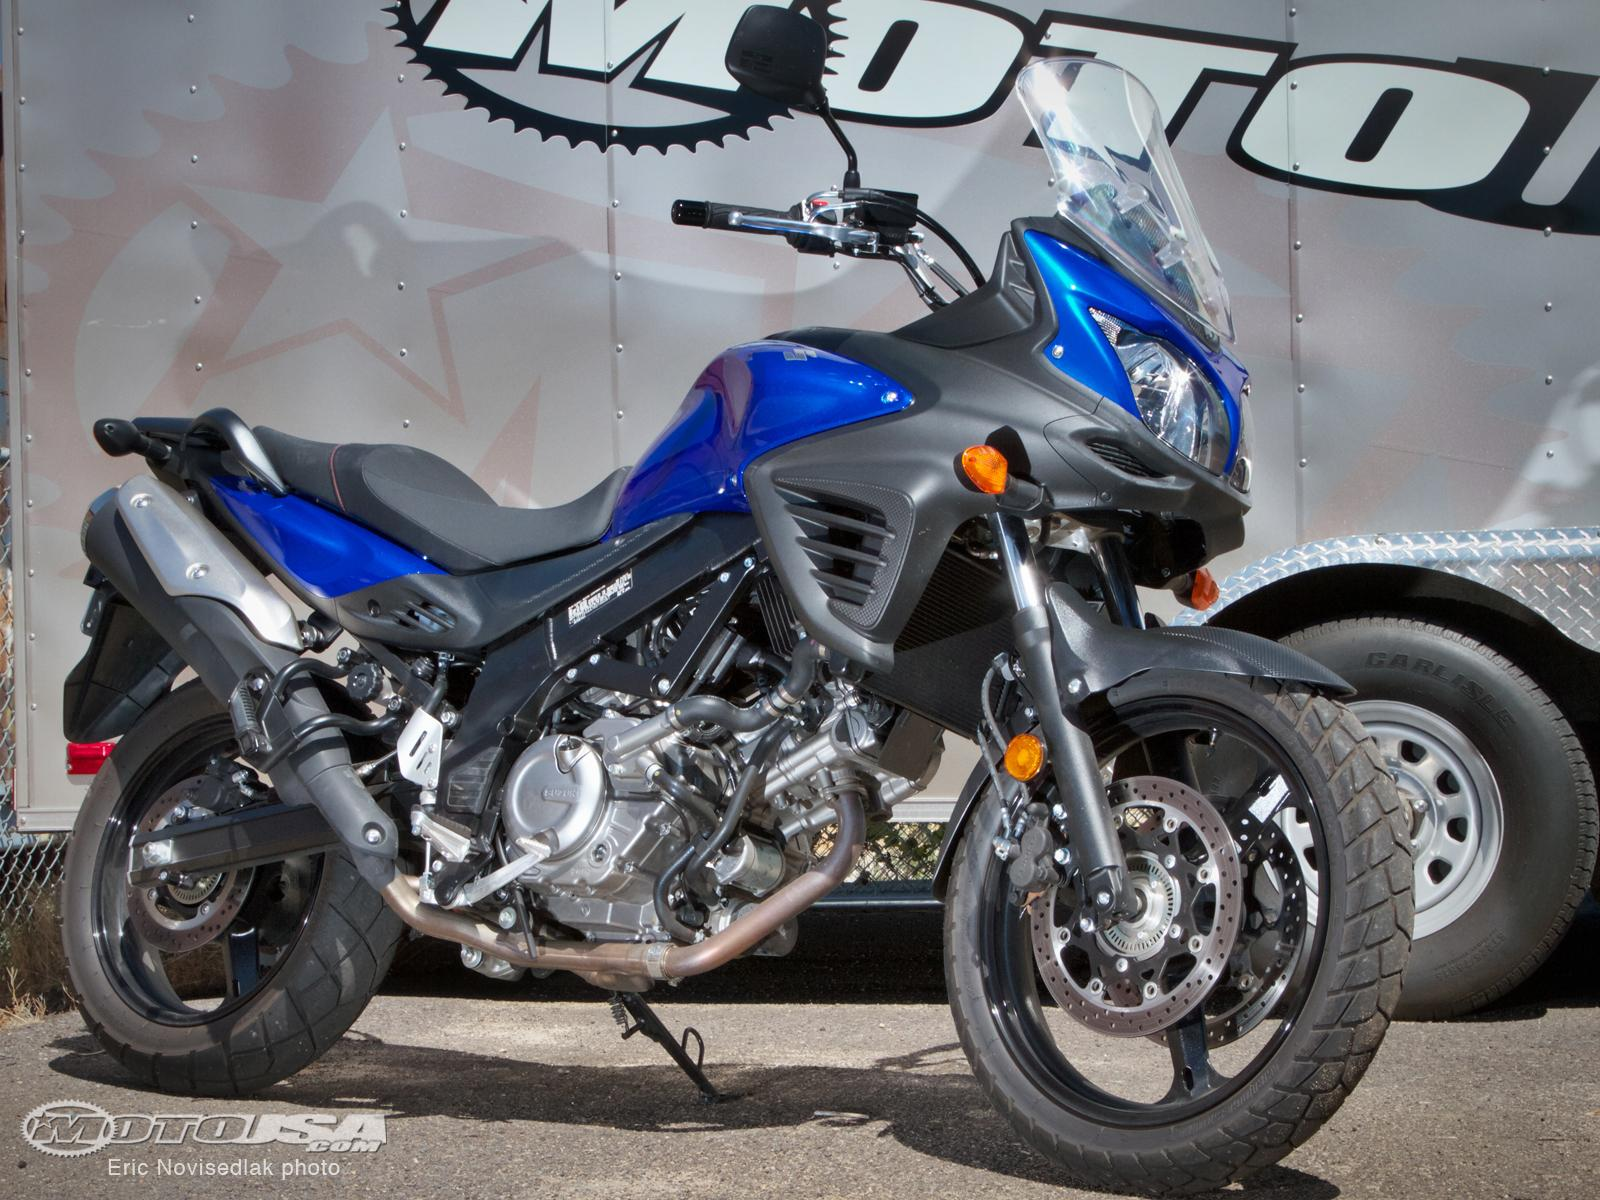 Suzuki V-Strom 650 ABS Grand Tourer #8